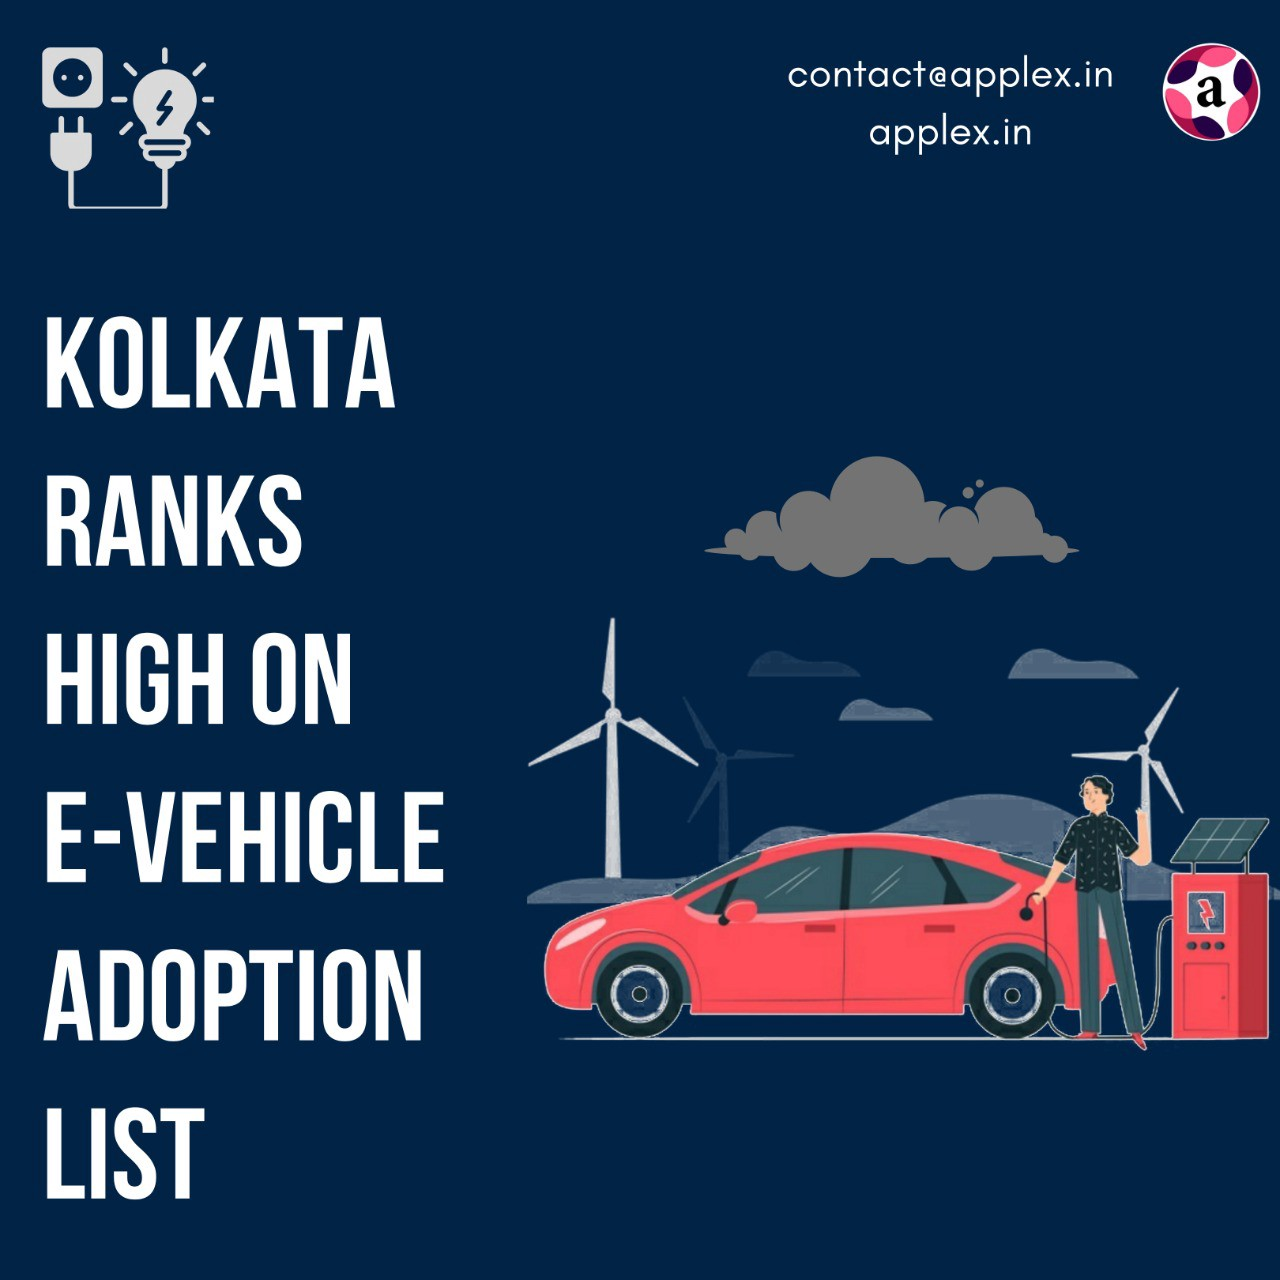 Kolkata ranks high on e-vehicle adoption list